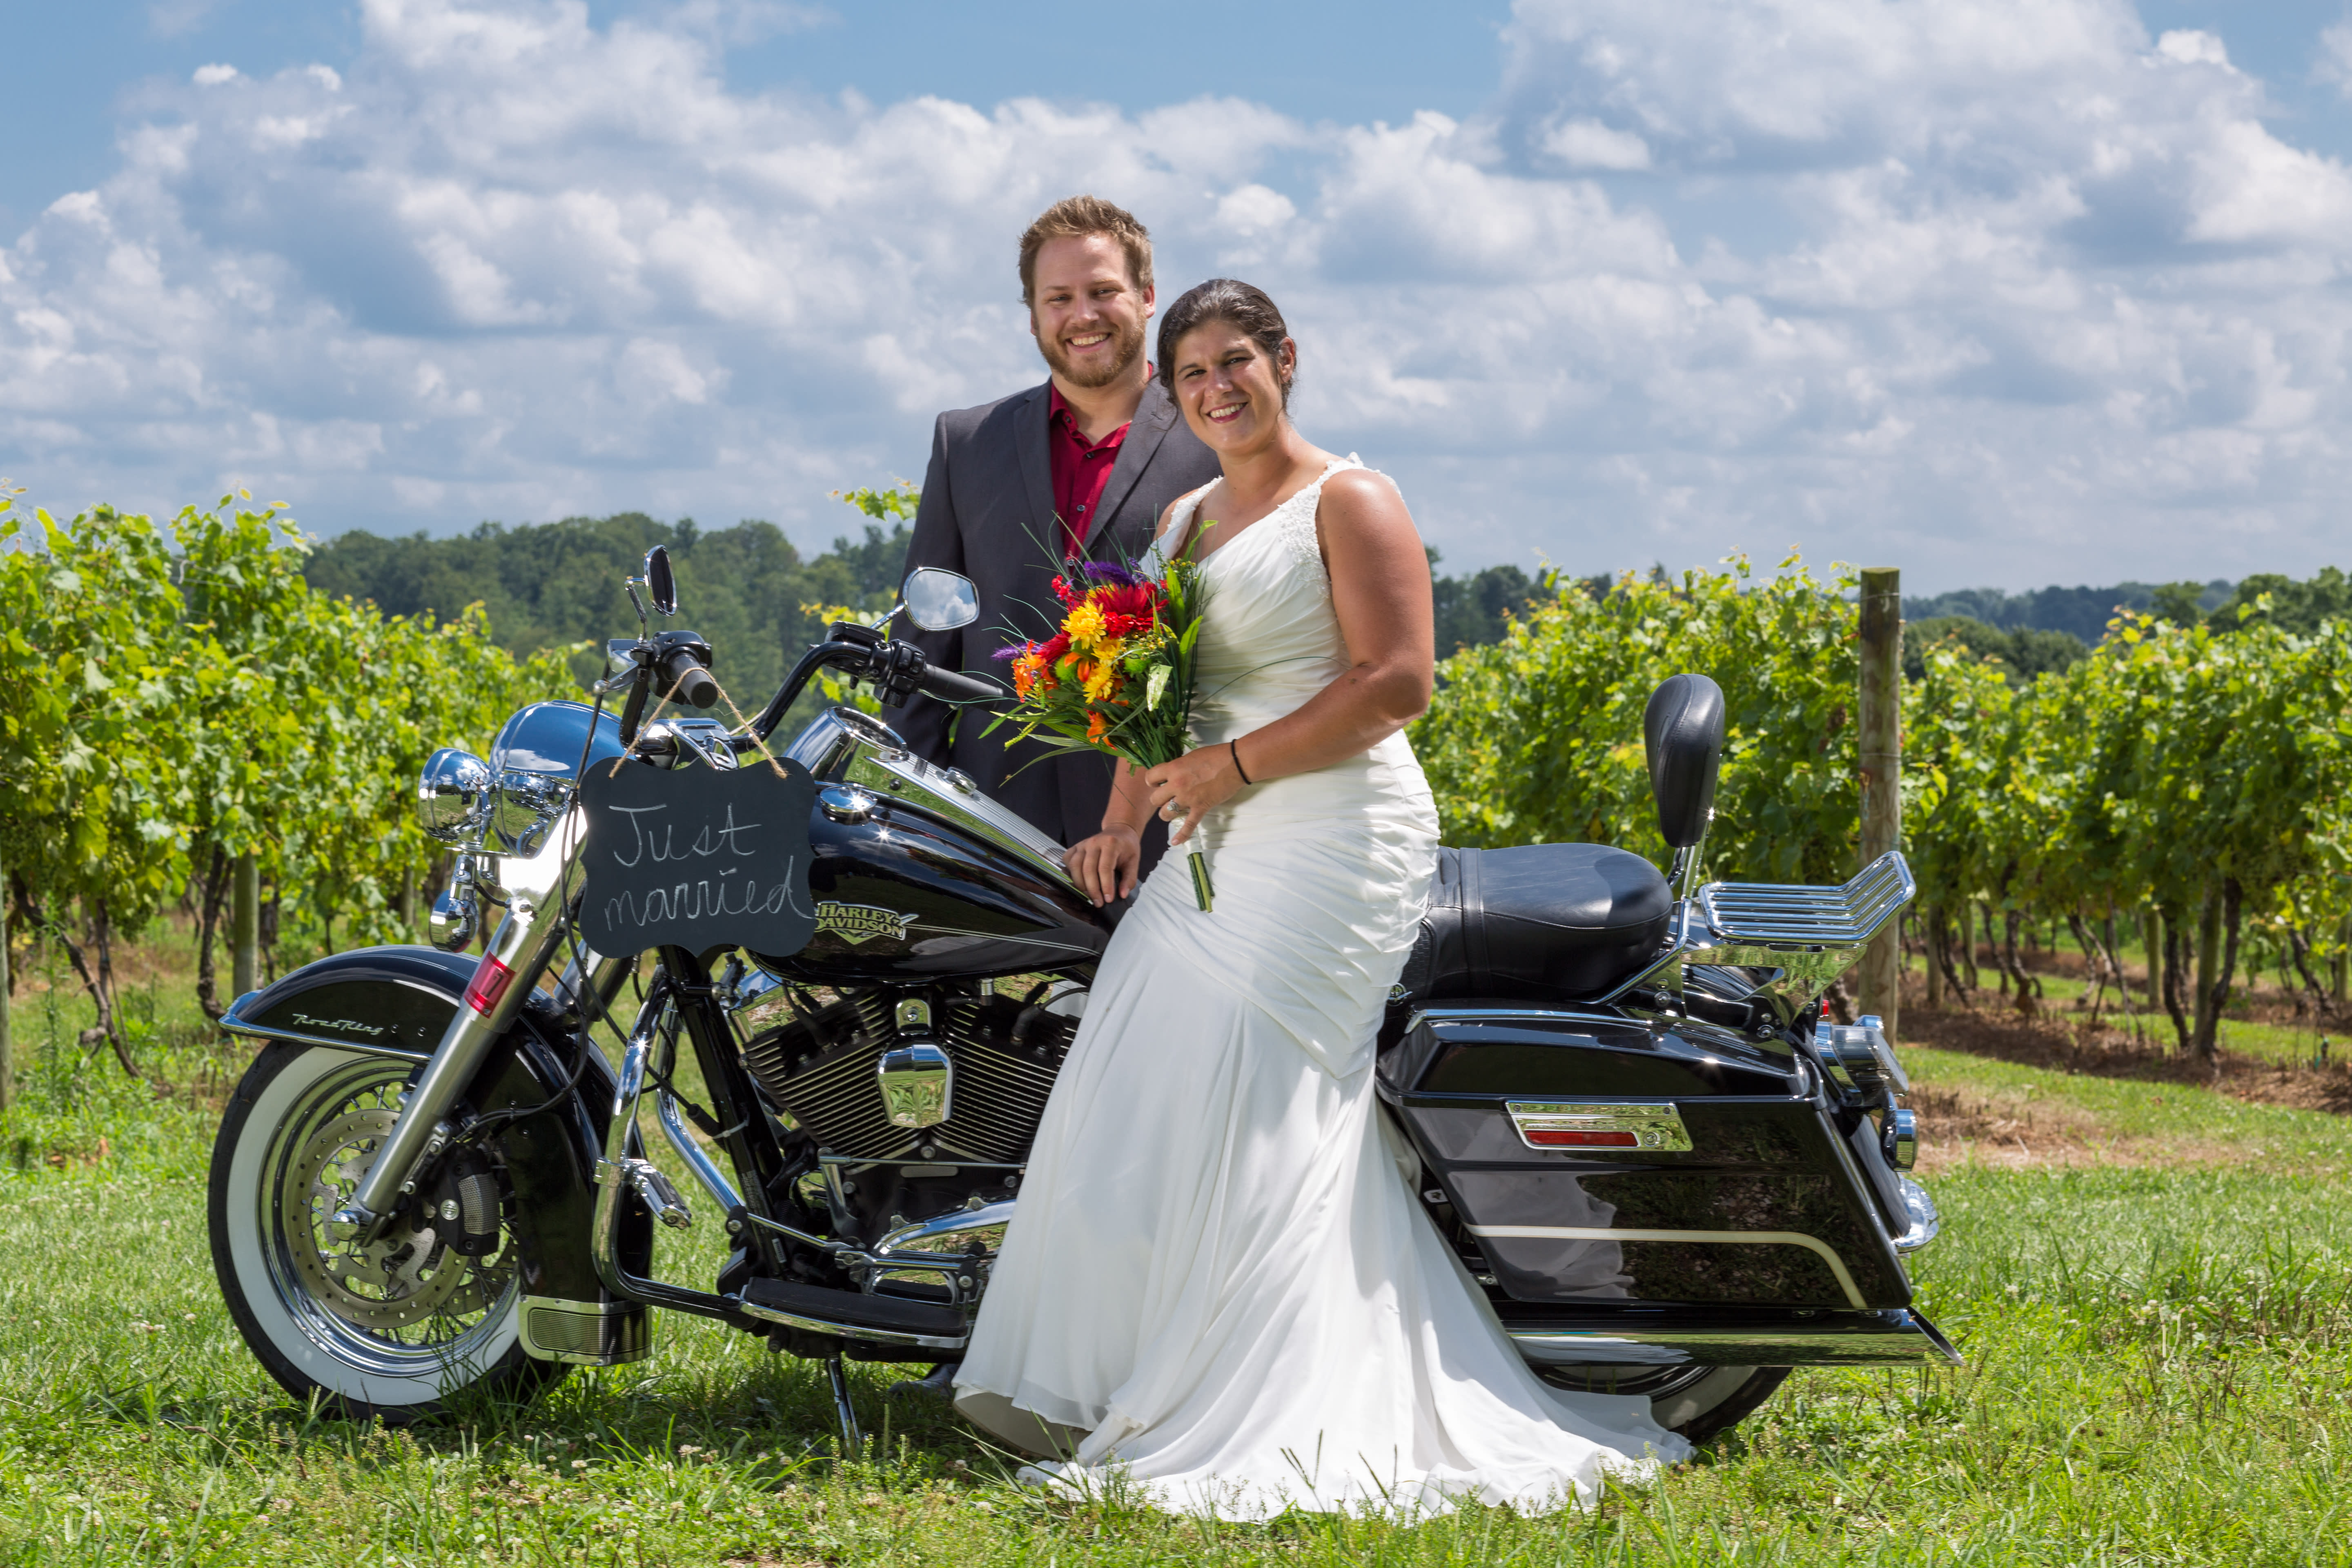 The vineyard at Naylor Wine Cellars, York County's oldest winery, also makes for a striking wedding venue.